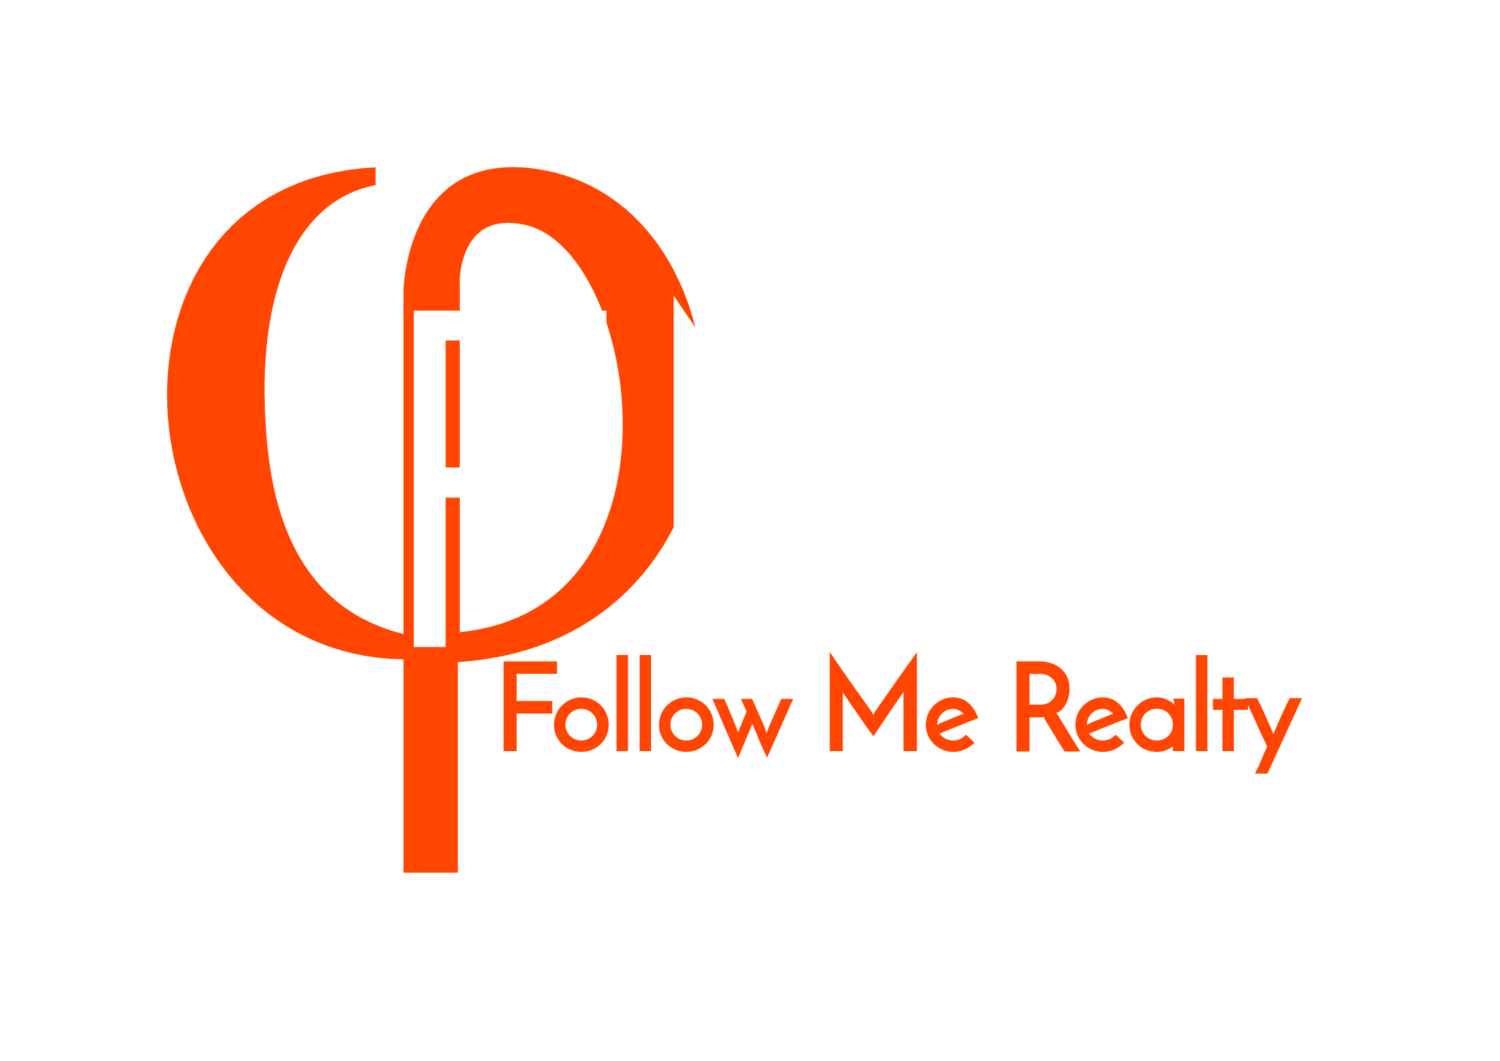 Follow Me Realty, find your way home.